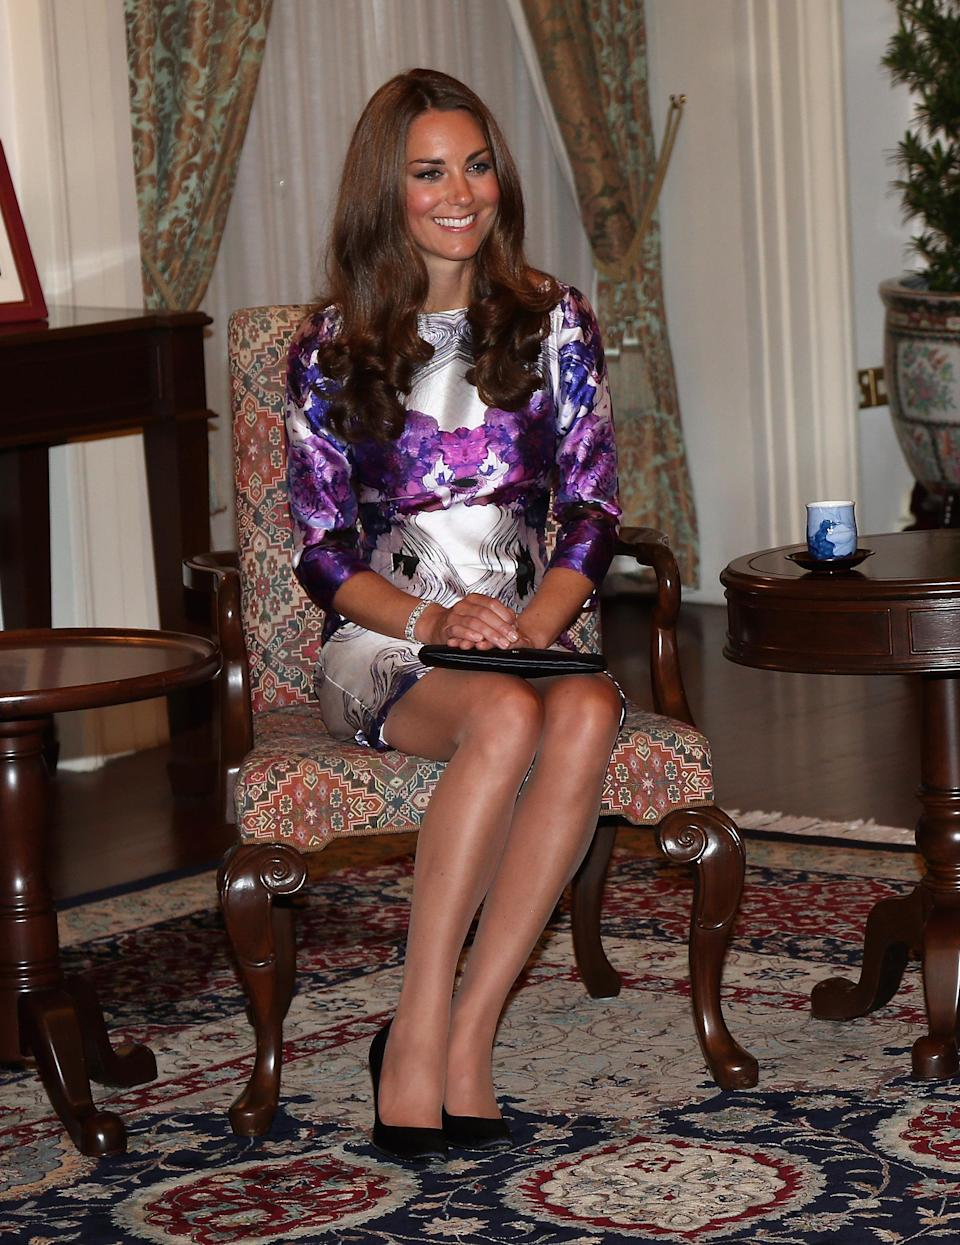 The Duchess of Cambridge sat in the 'Duchess Slant' on September 11, 2012 [Photo: Getty]